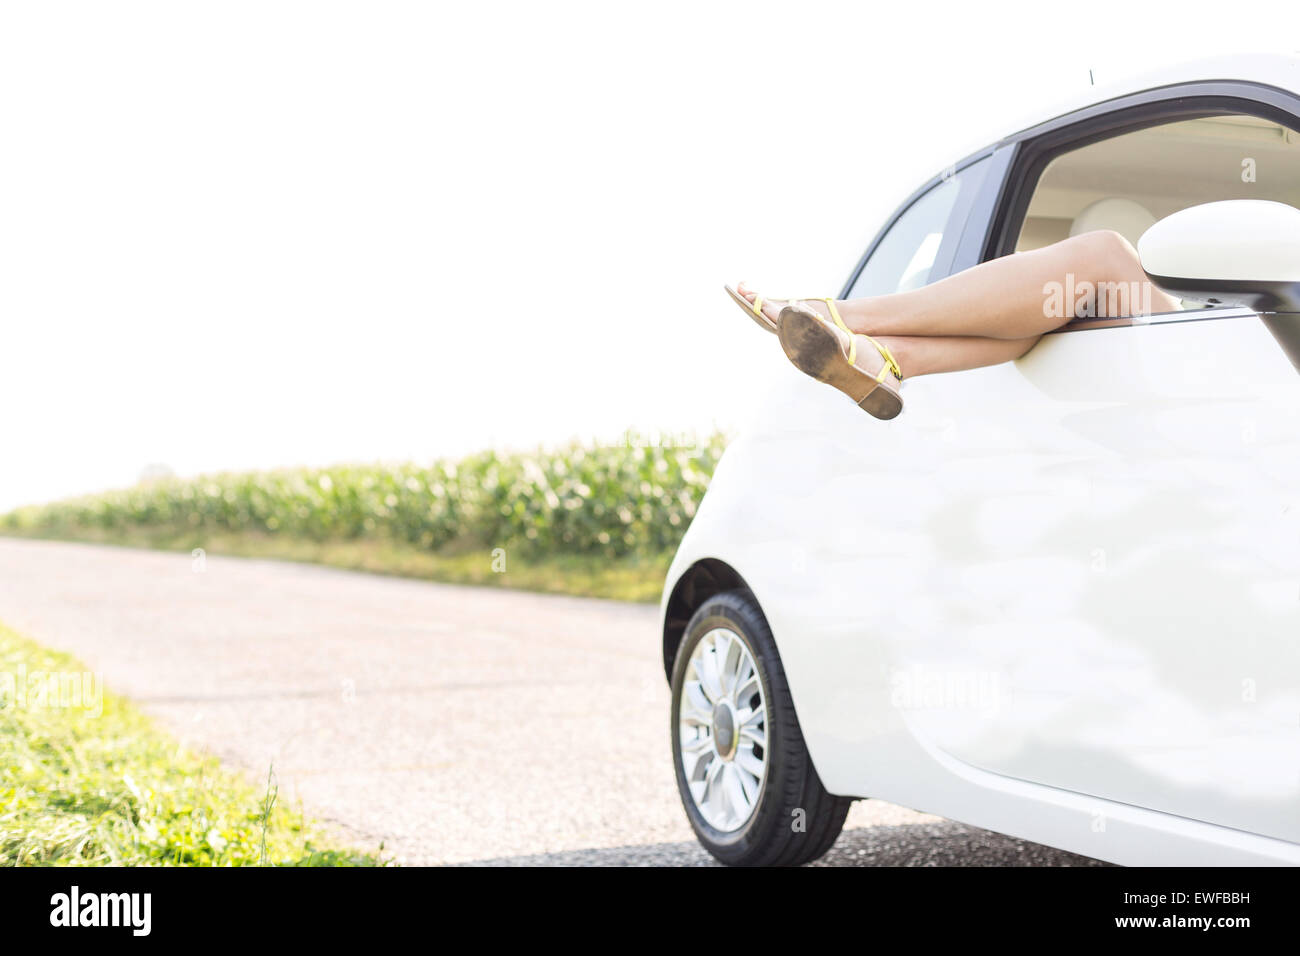 Low section of woman relaxing in car on country road - Stock Image